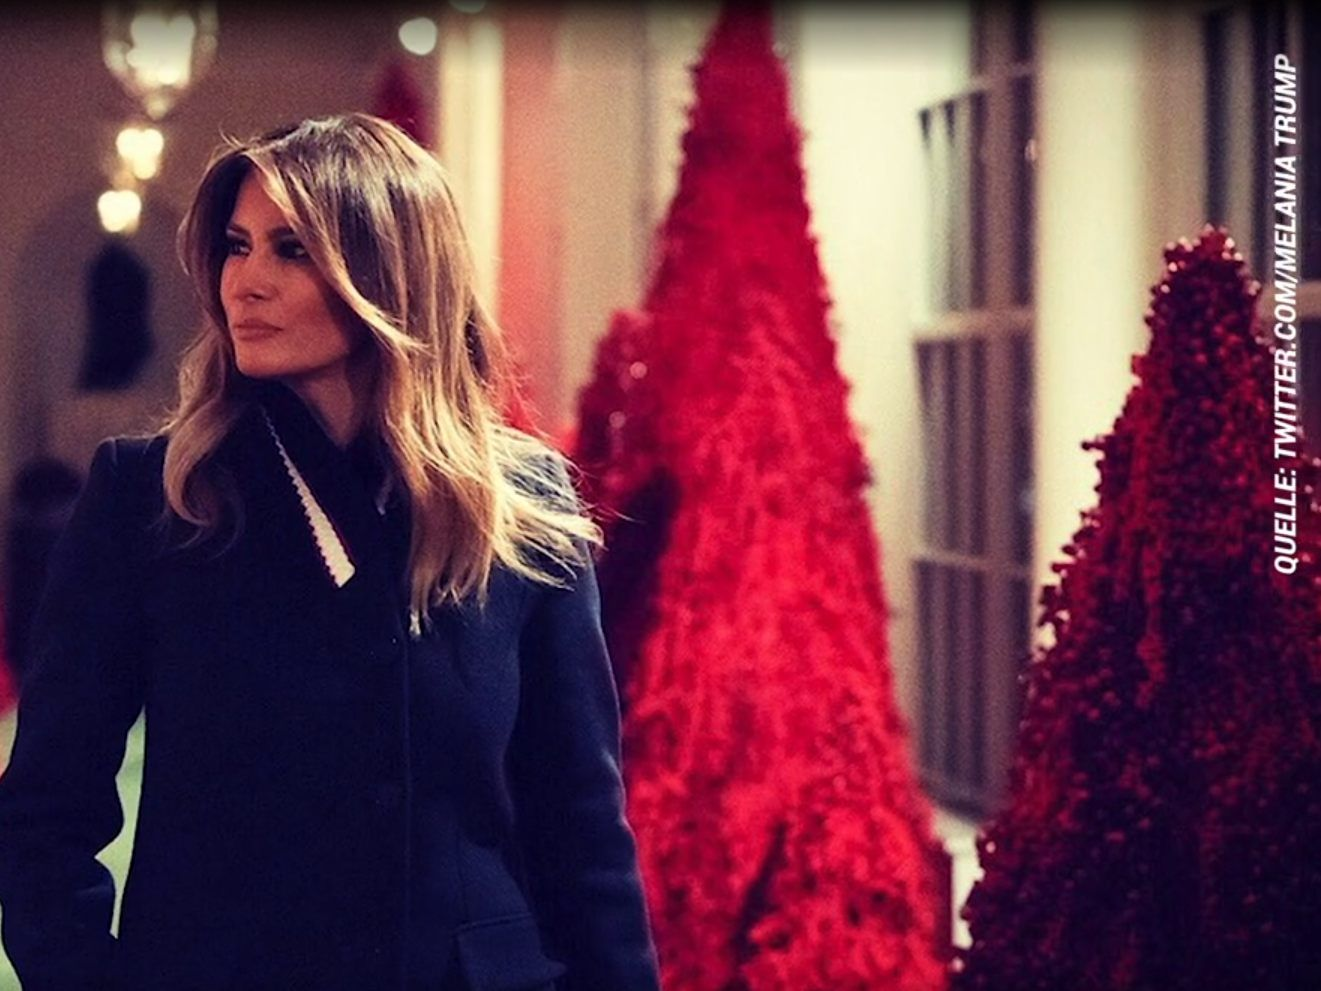 first lady melania trump taucht das wei e haus in rot stars vol at. Black Bedroom Furniture Sets. Home Design Ideas